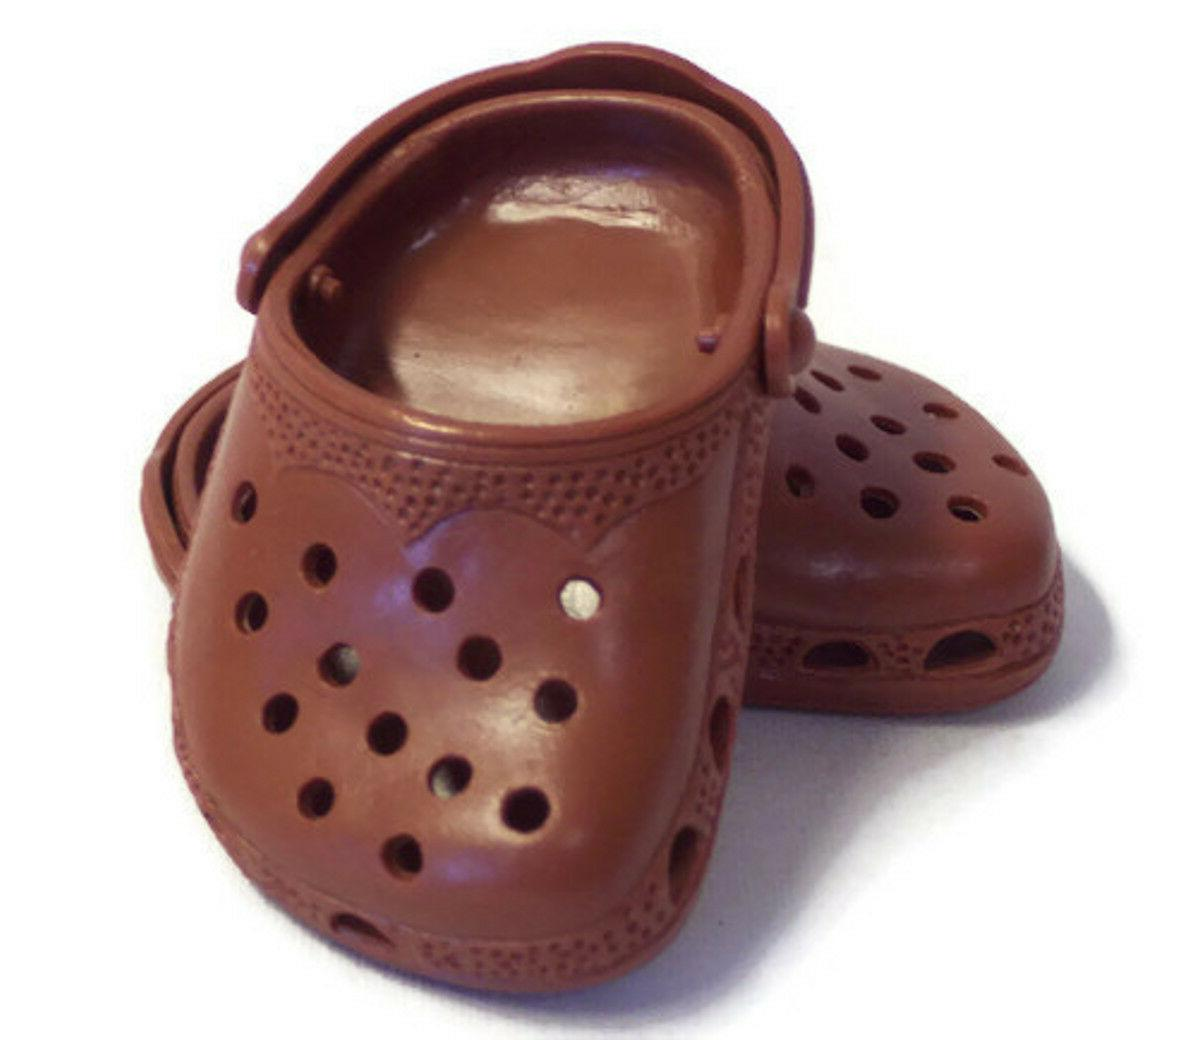 brown duc shoes fits 18 inch american